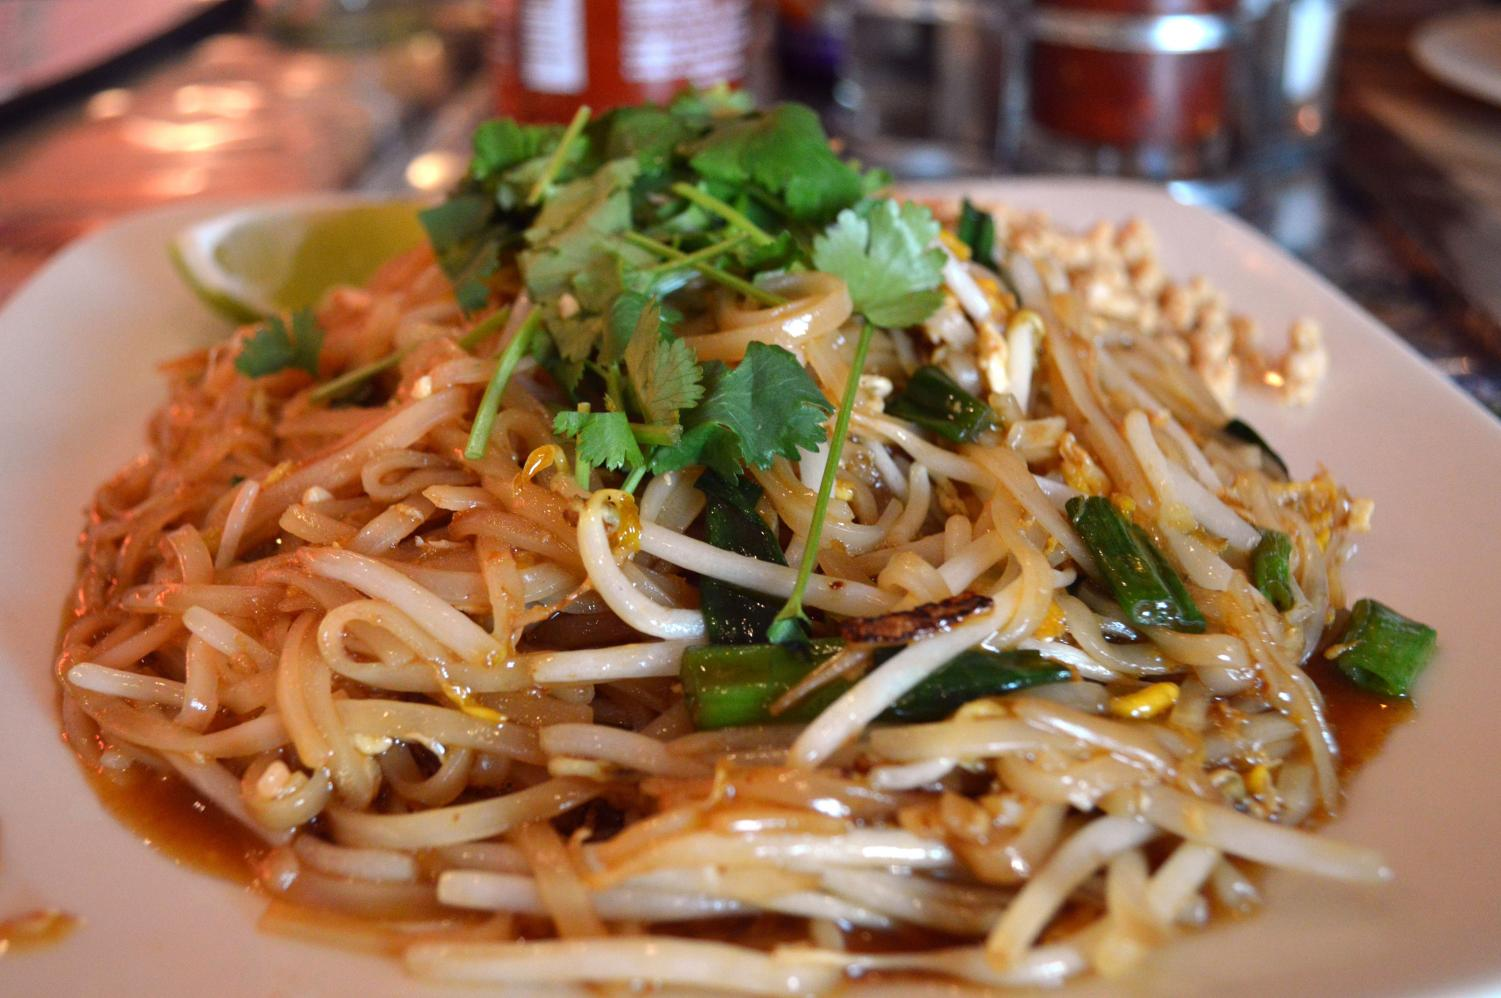 Thai Table's pad thai, which was $9.99, came in second place out of all five restaurants.